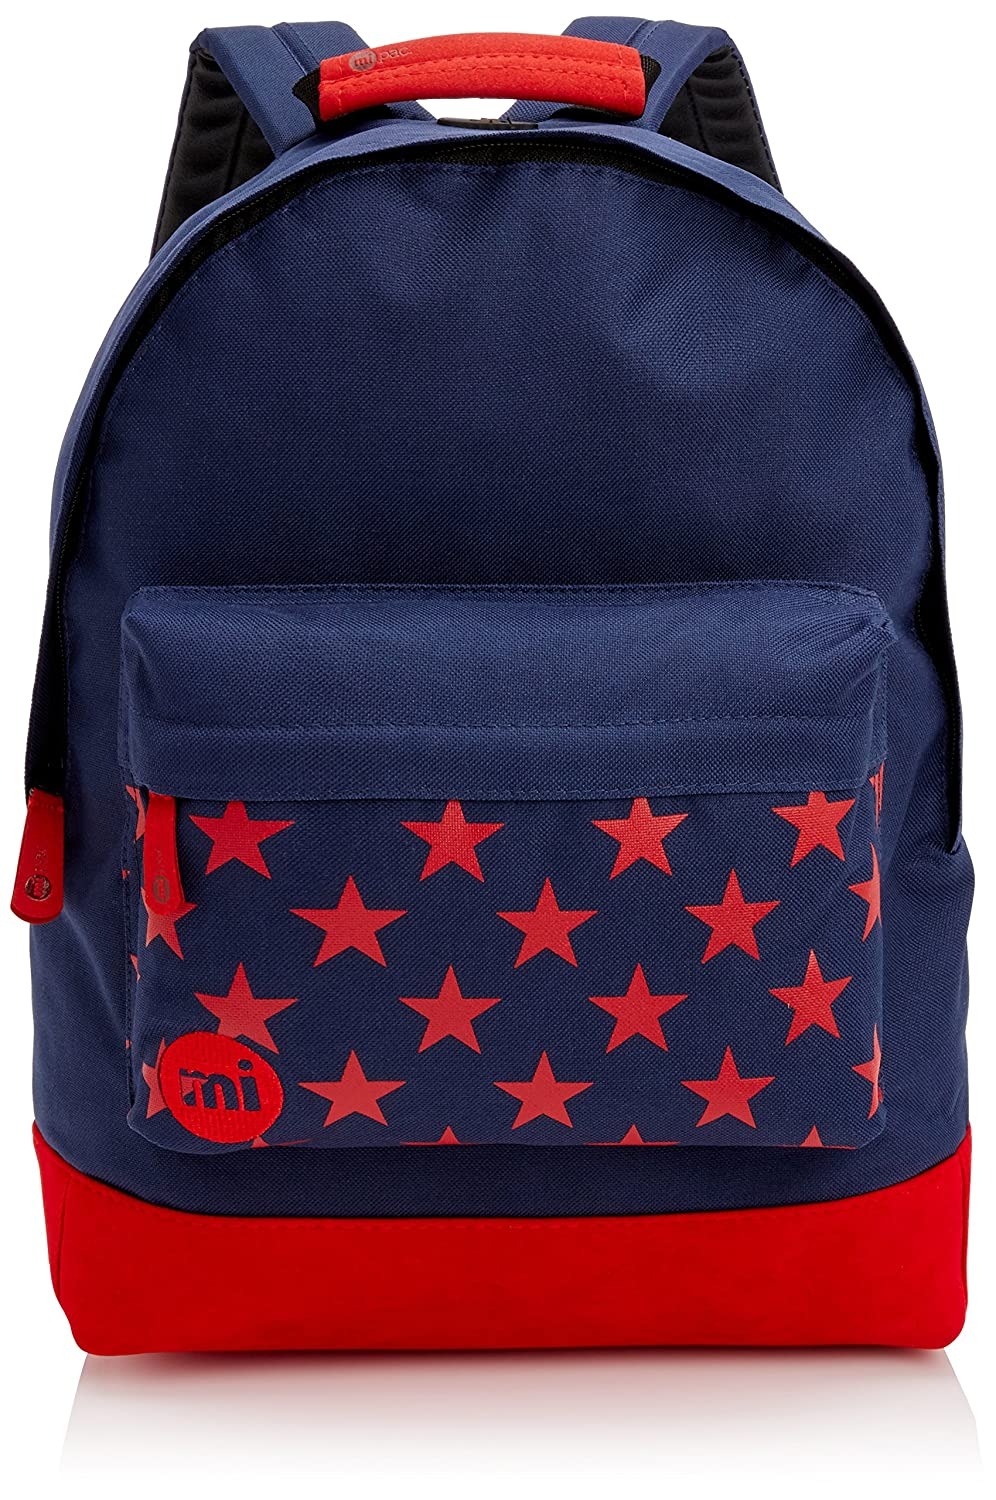 Mi-Pac Backpack - Navy Navy Red  Amazon.co.uk  Luggage 2245314f6bef6